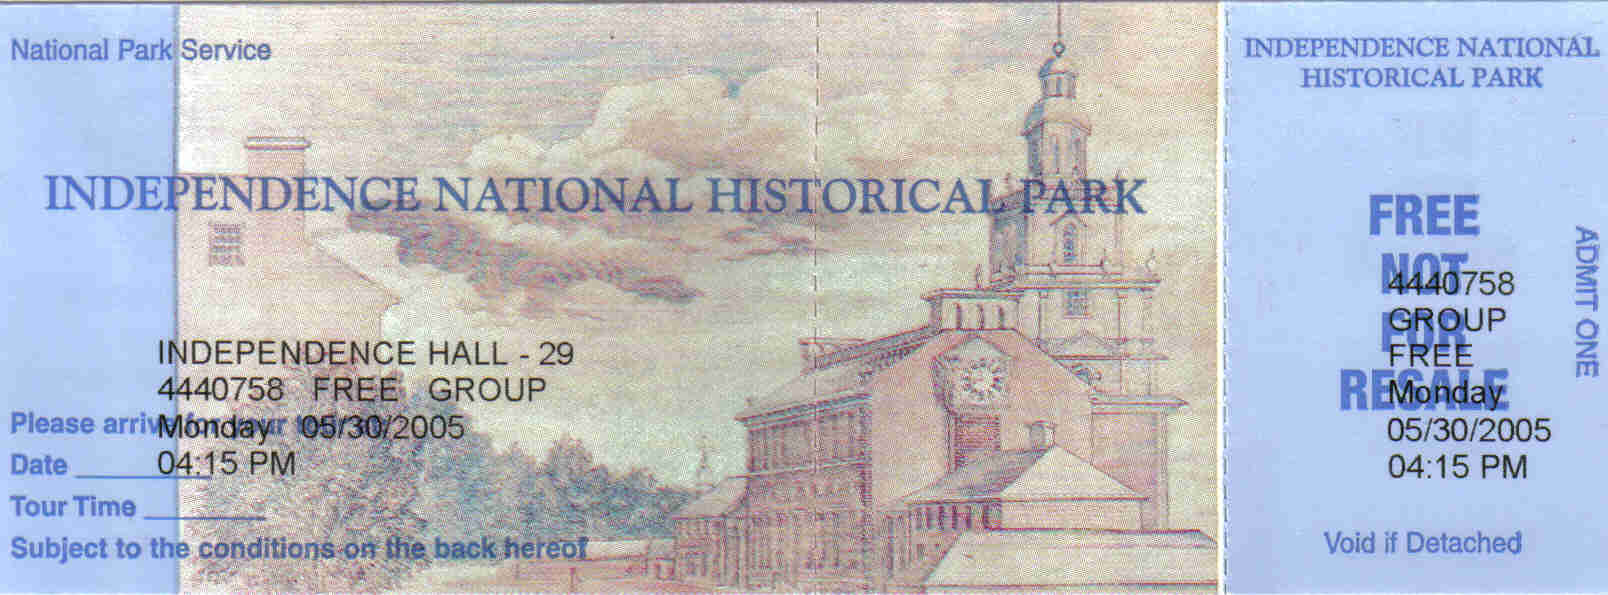 Independence Hall ticket